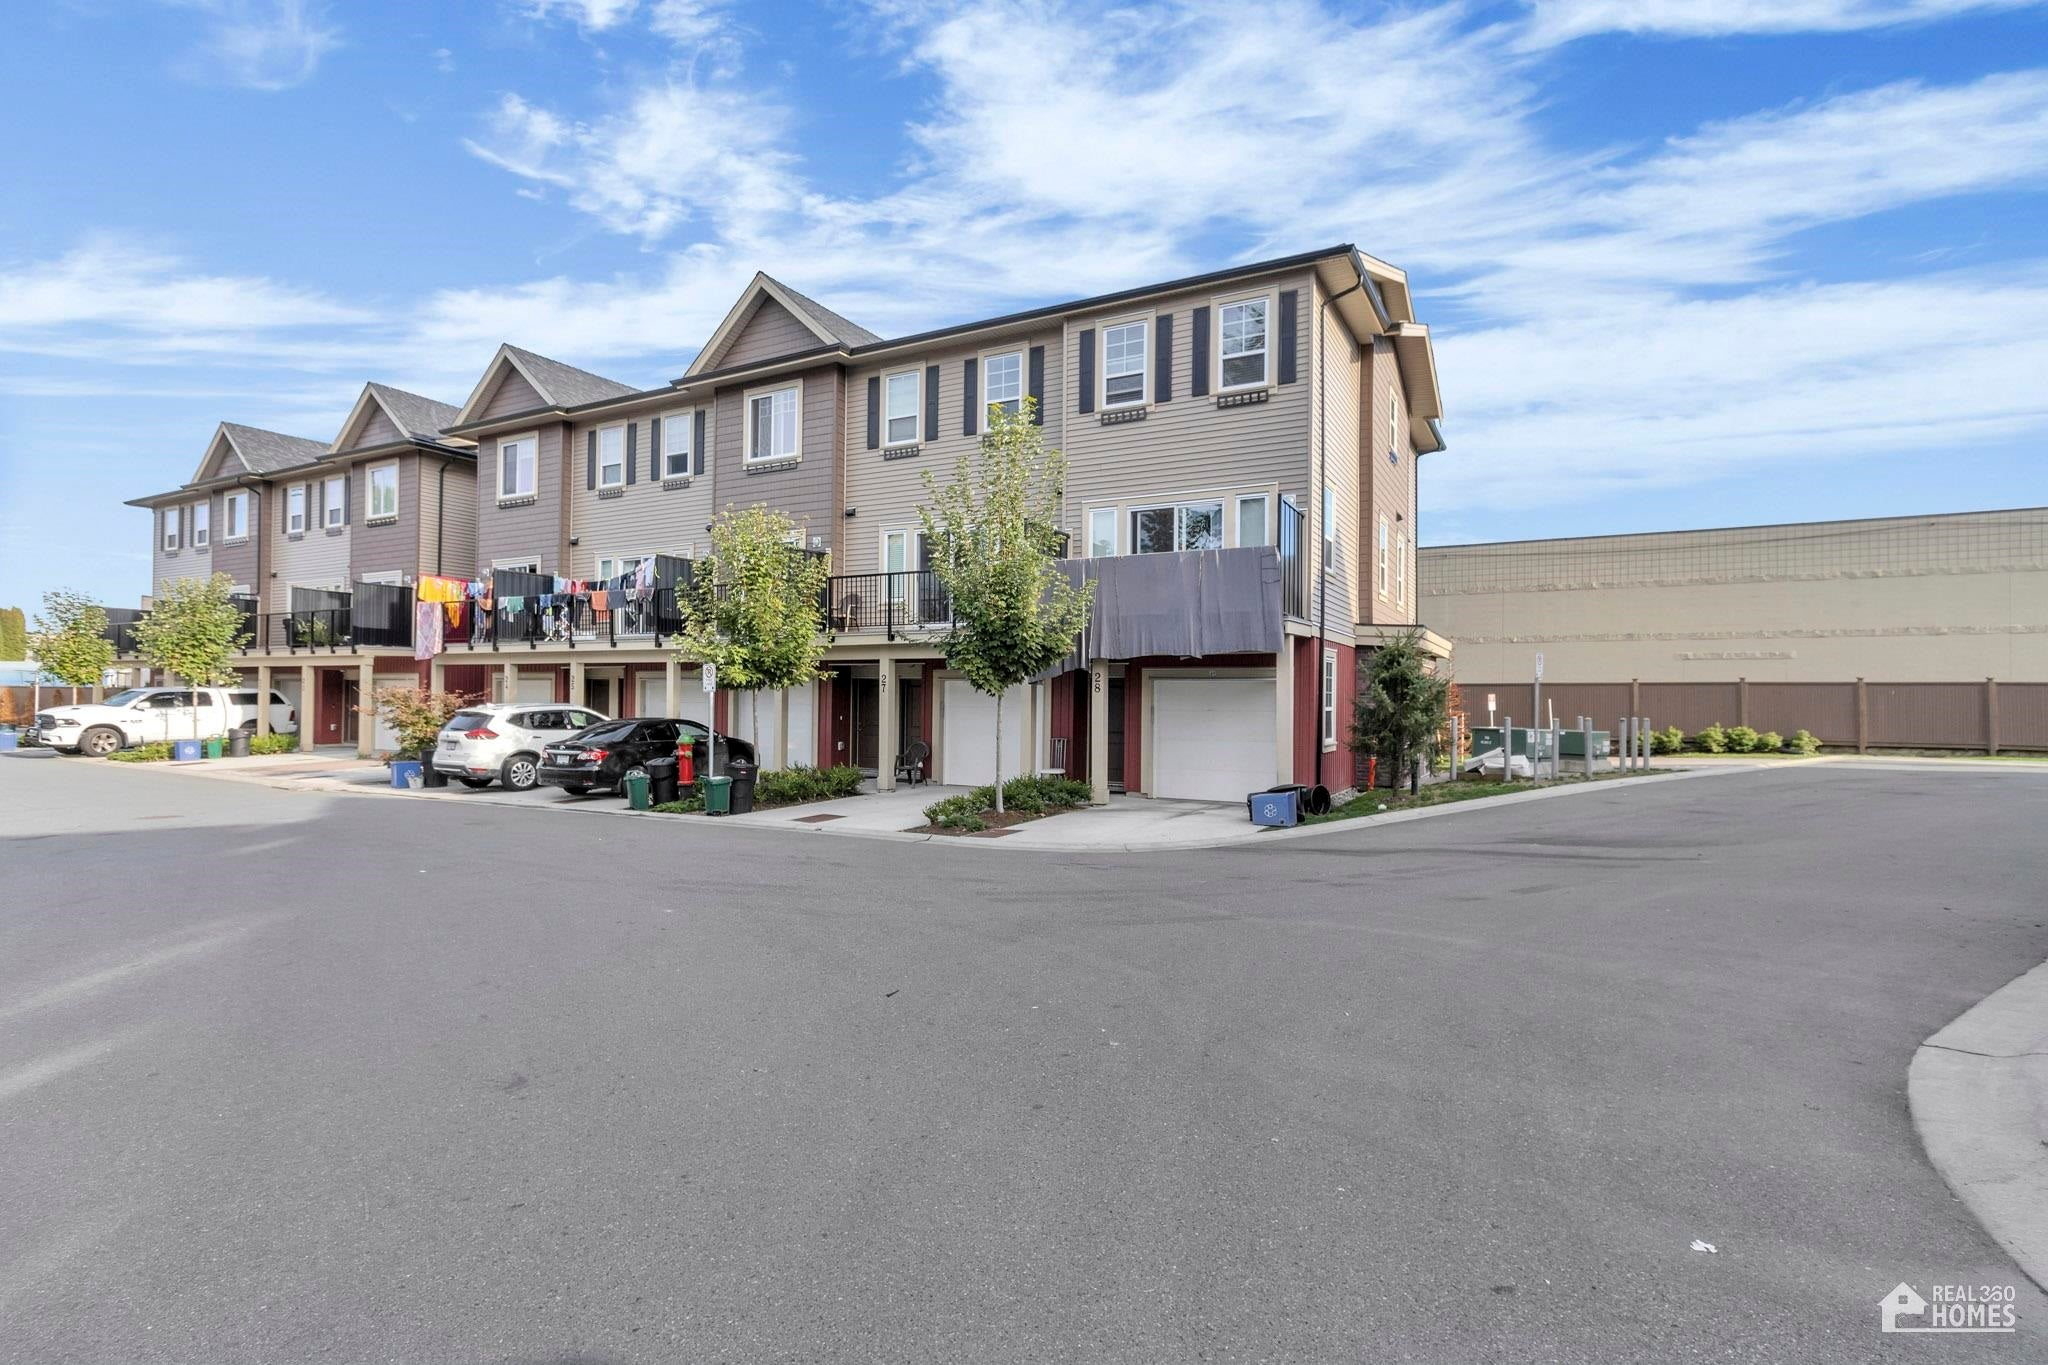 26 2530 JANZEN STREET - Abbotsford West Townhouse for sale, 4 Bedrooms (R2627702) - #1